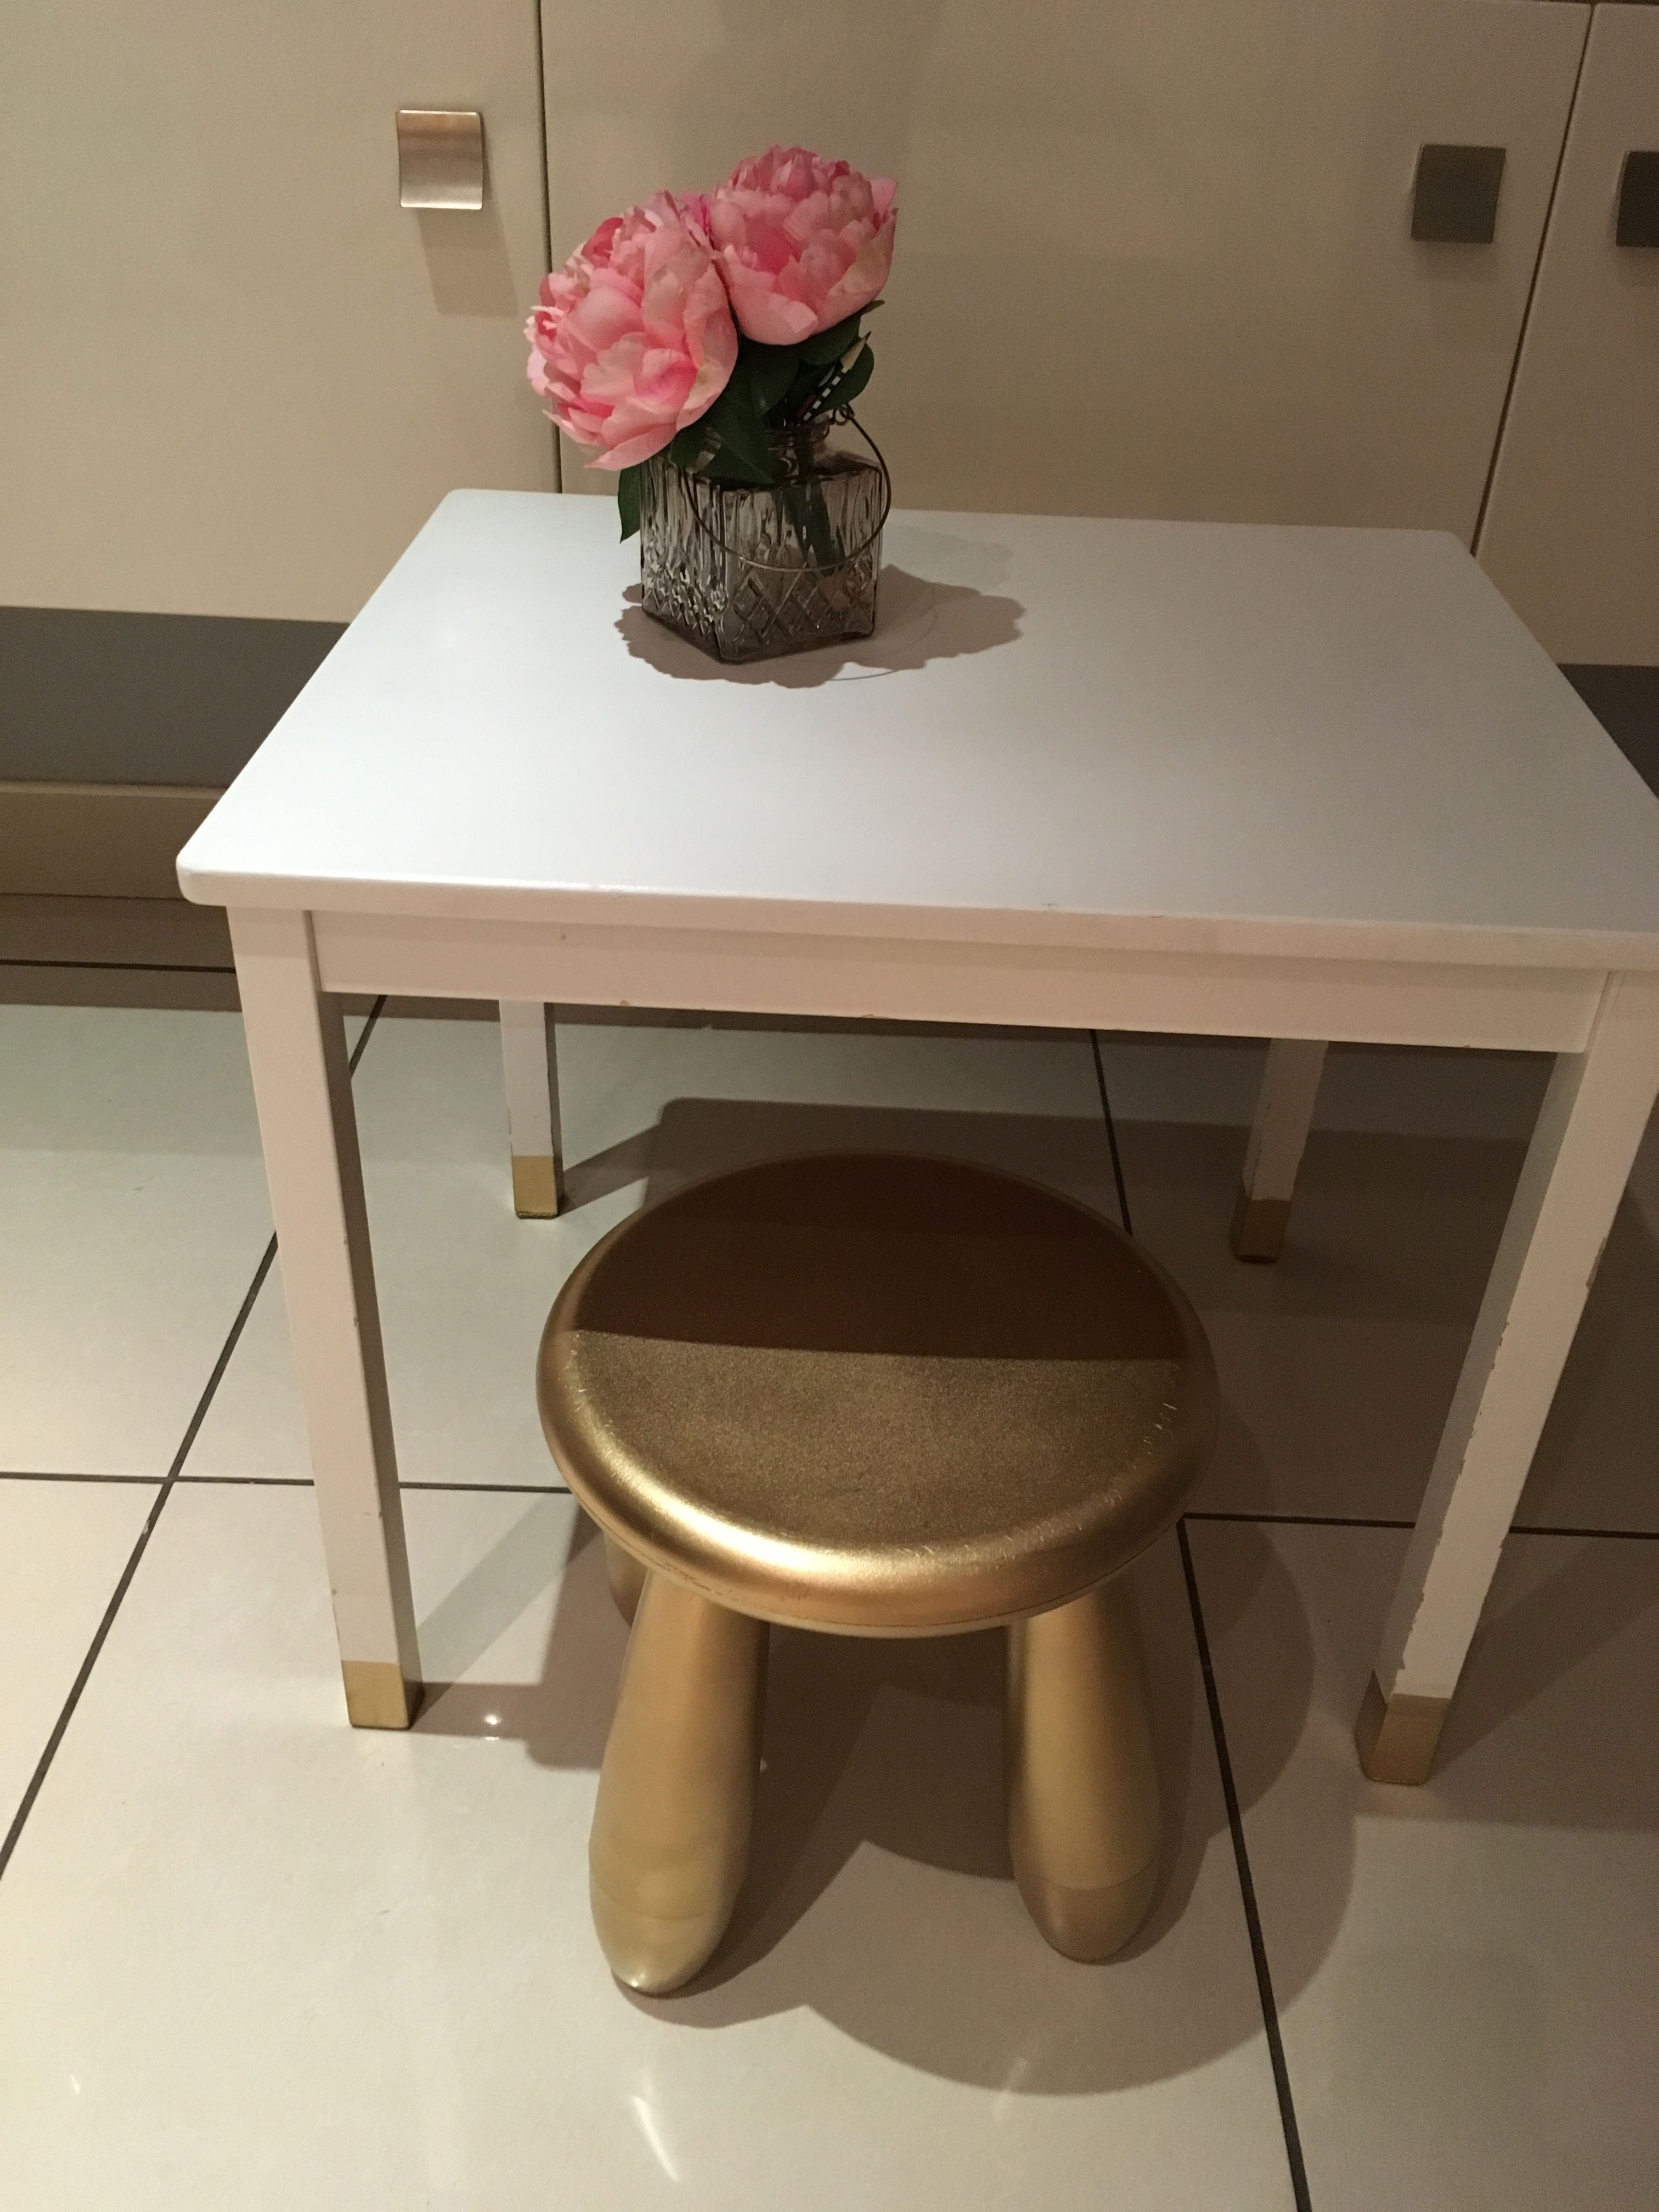 Ikea Mammut Stool Painted With Gold Spray Paint And Ikea Kritter Table With Gold Tipped Legs A Very Inexpensive Quick And Easy Haus Innenräume Innenraum Raum